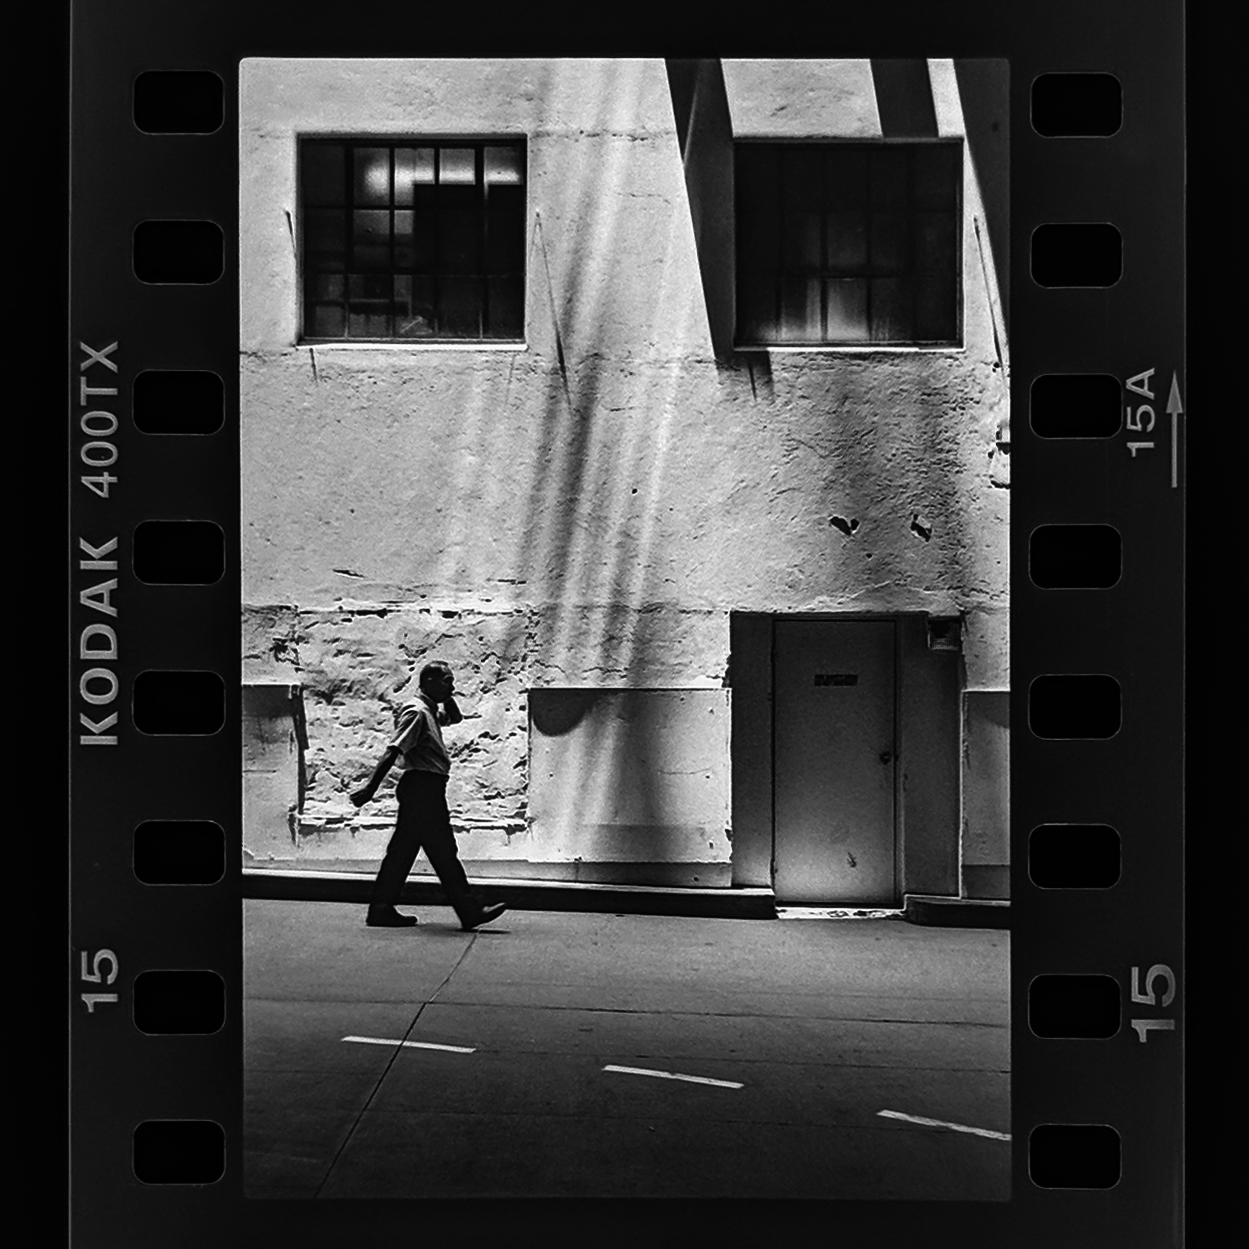 DIY Film Negative Scanning – Renato Repetto – Medium